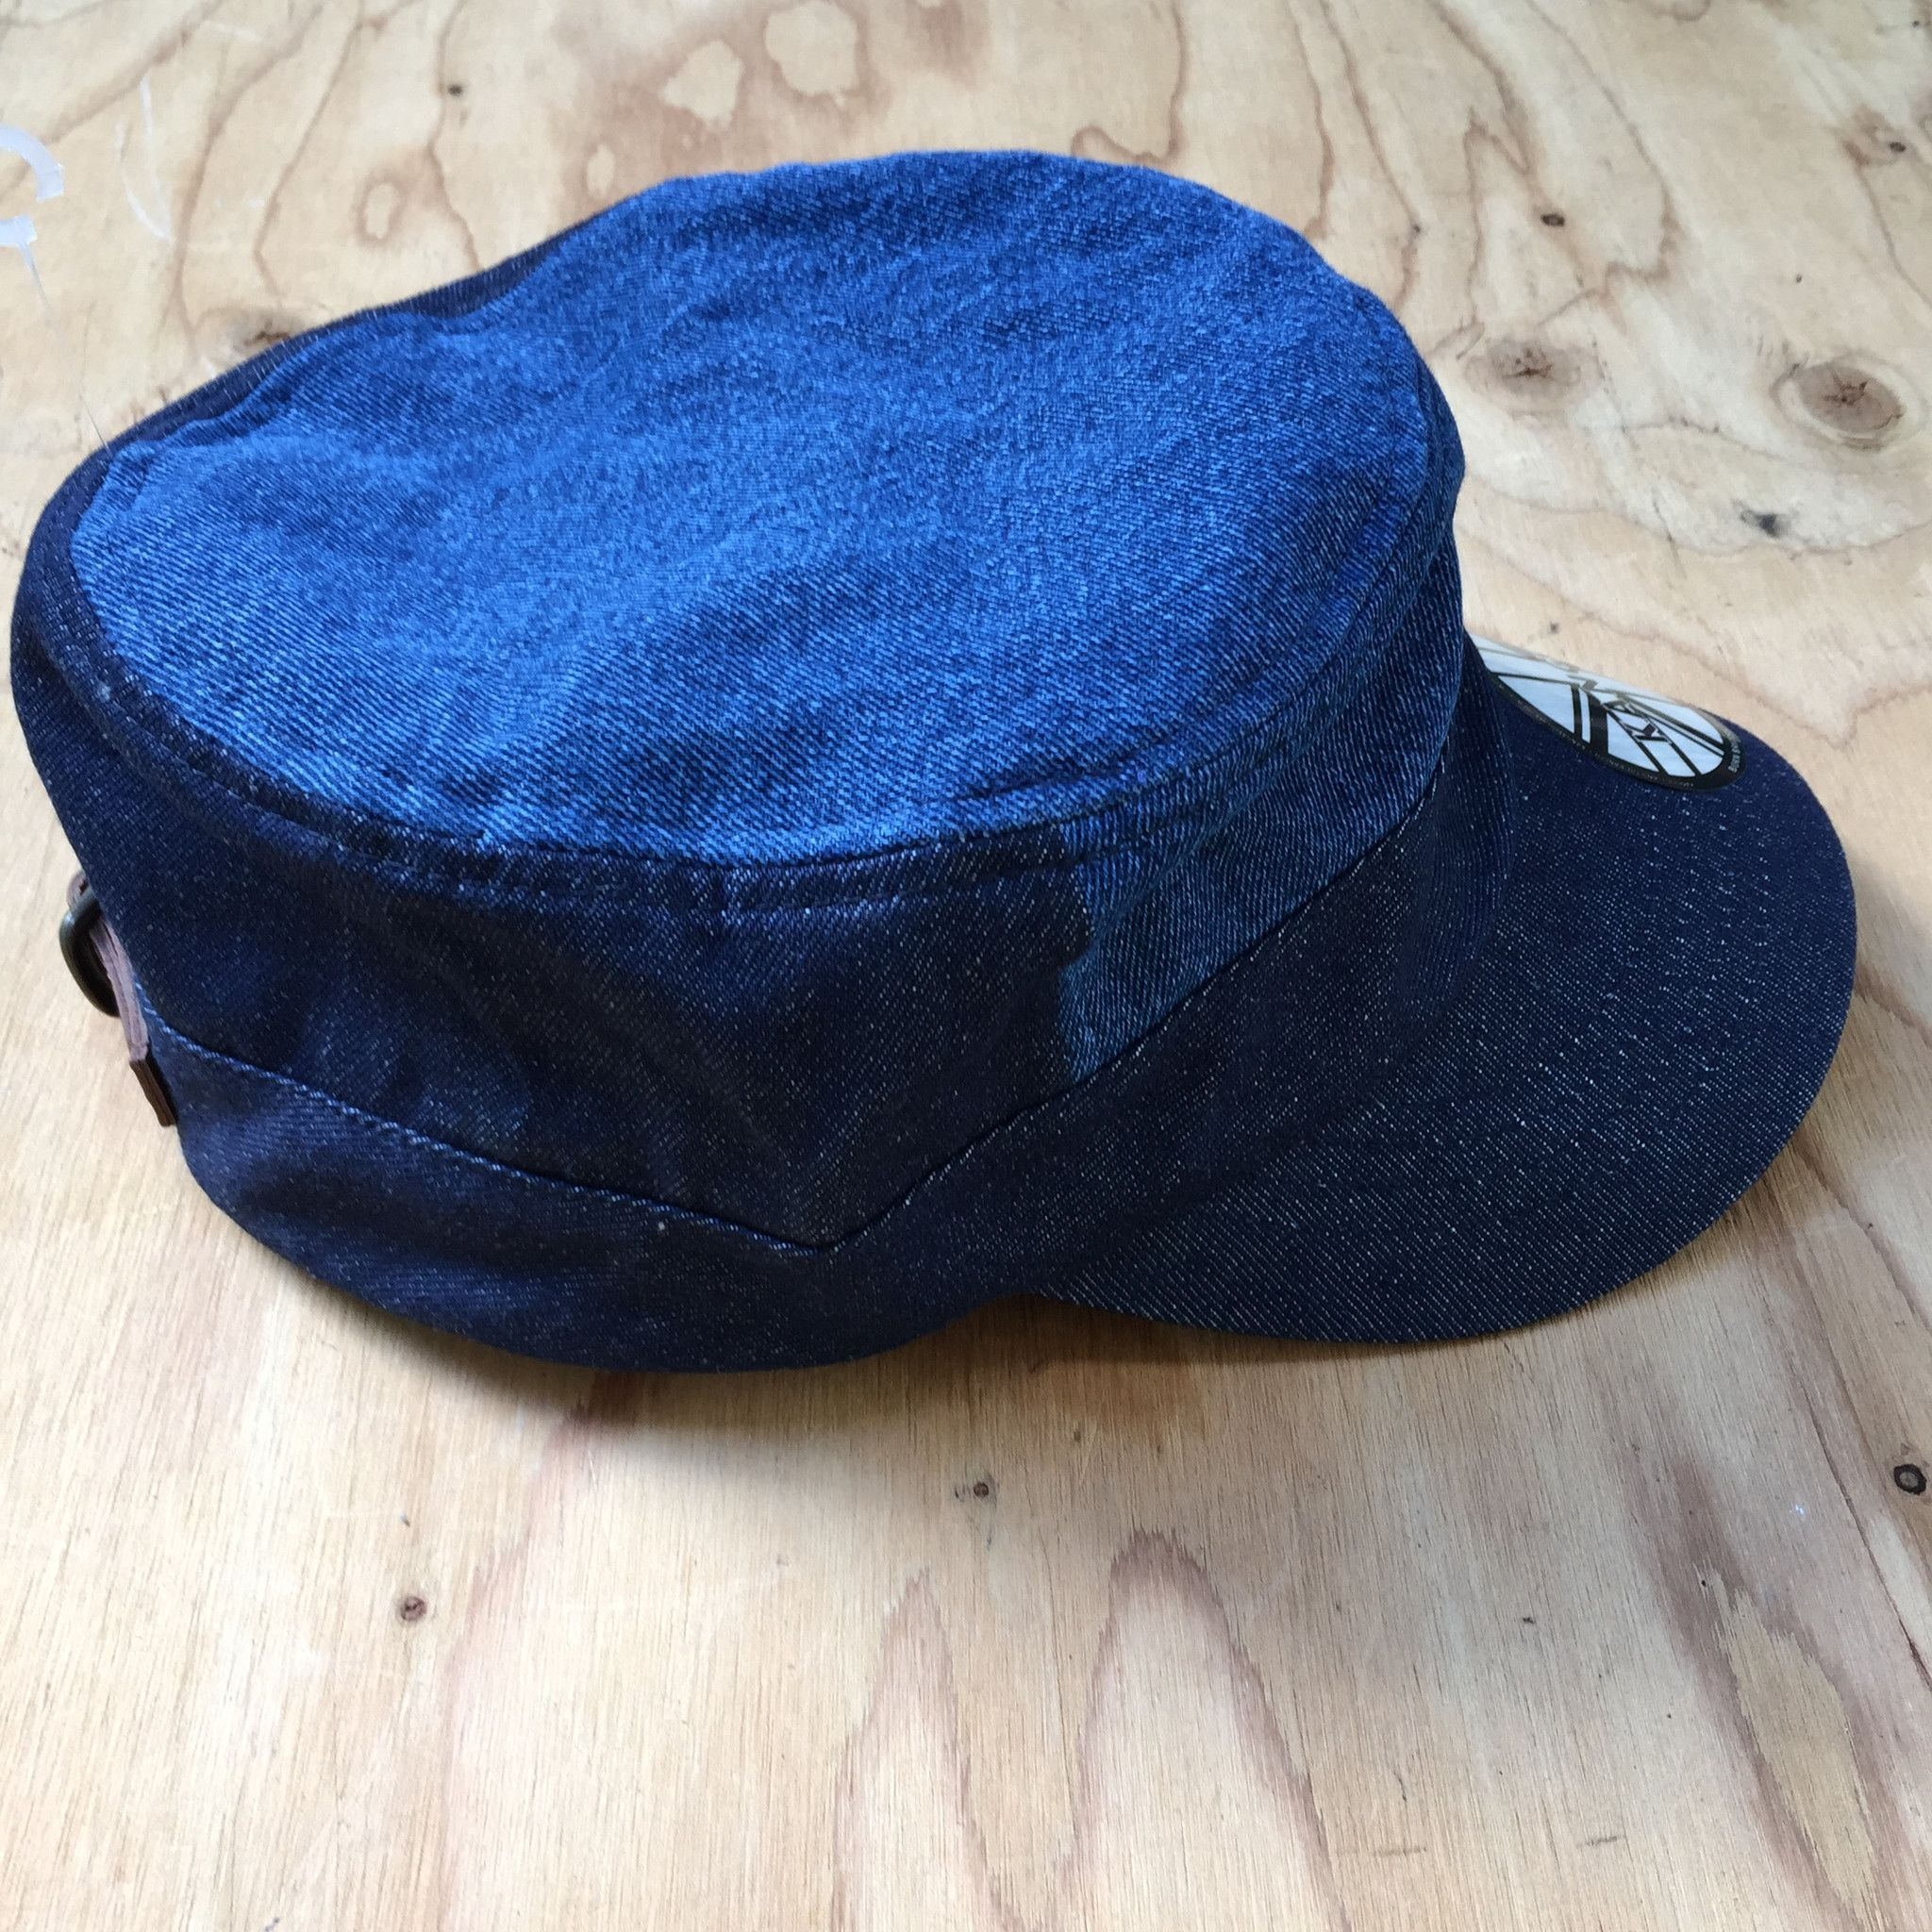 Kangol Cadet Blue Jeans Jah Army Military Army Cadet Cap Hat 100% Cotton  ARMY 725f99e0df2